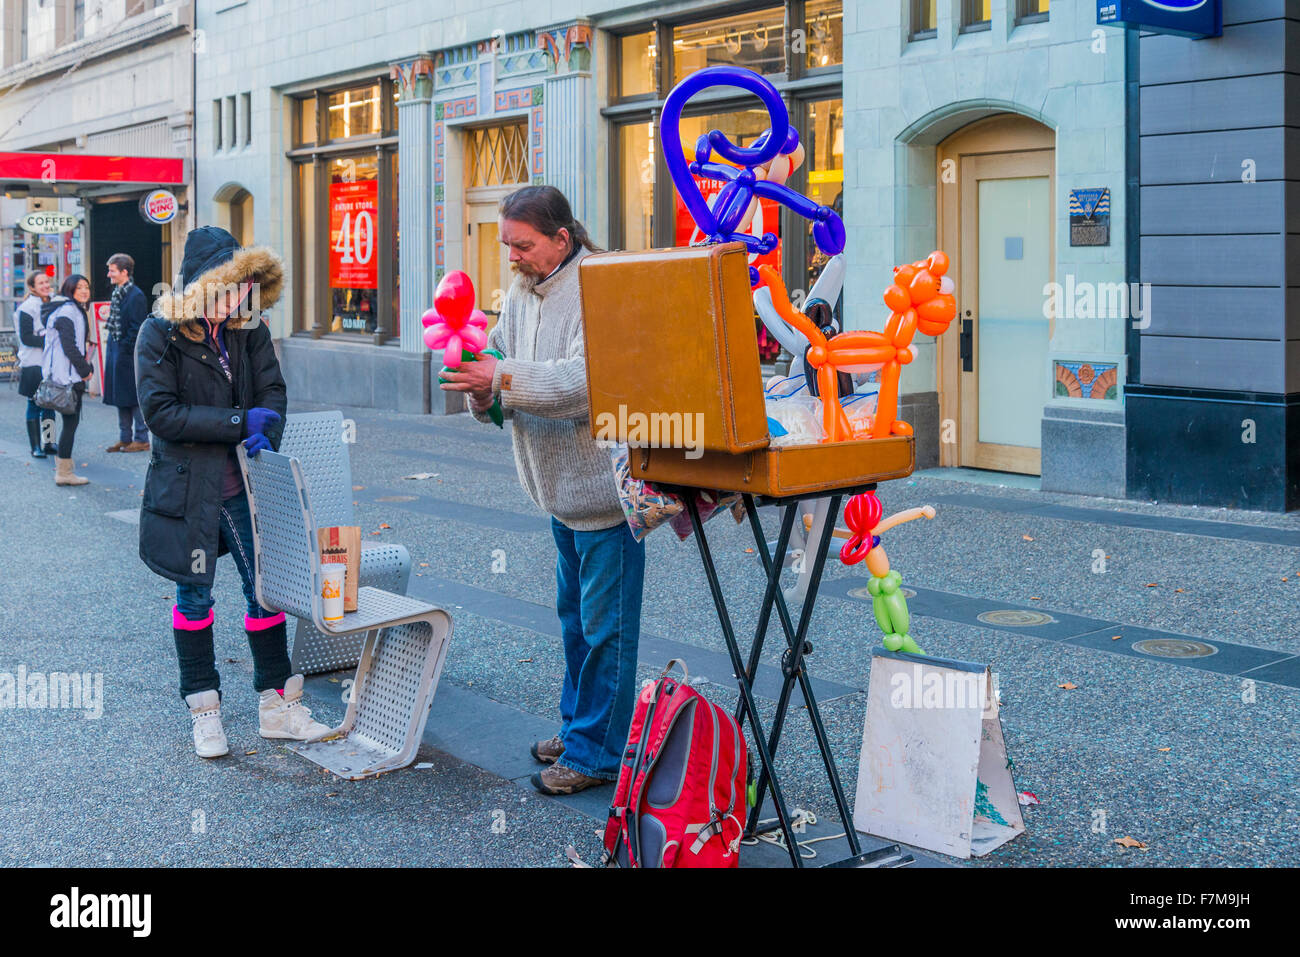 Balloon man makes flower for sad woman, Granville Street, Vancouver, British Columbia, Canada, - Stock Image